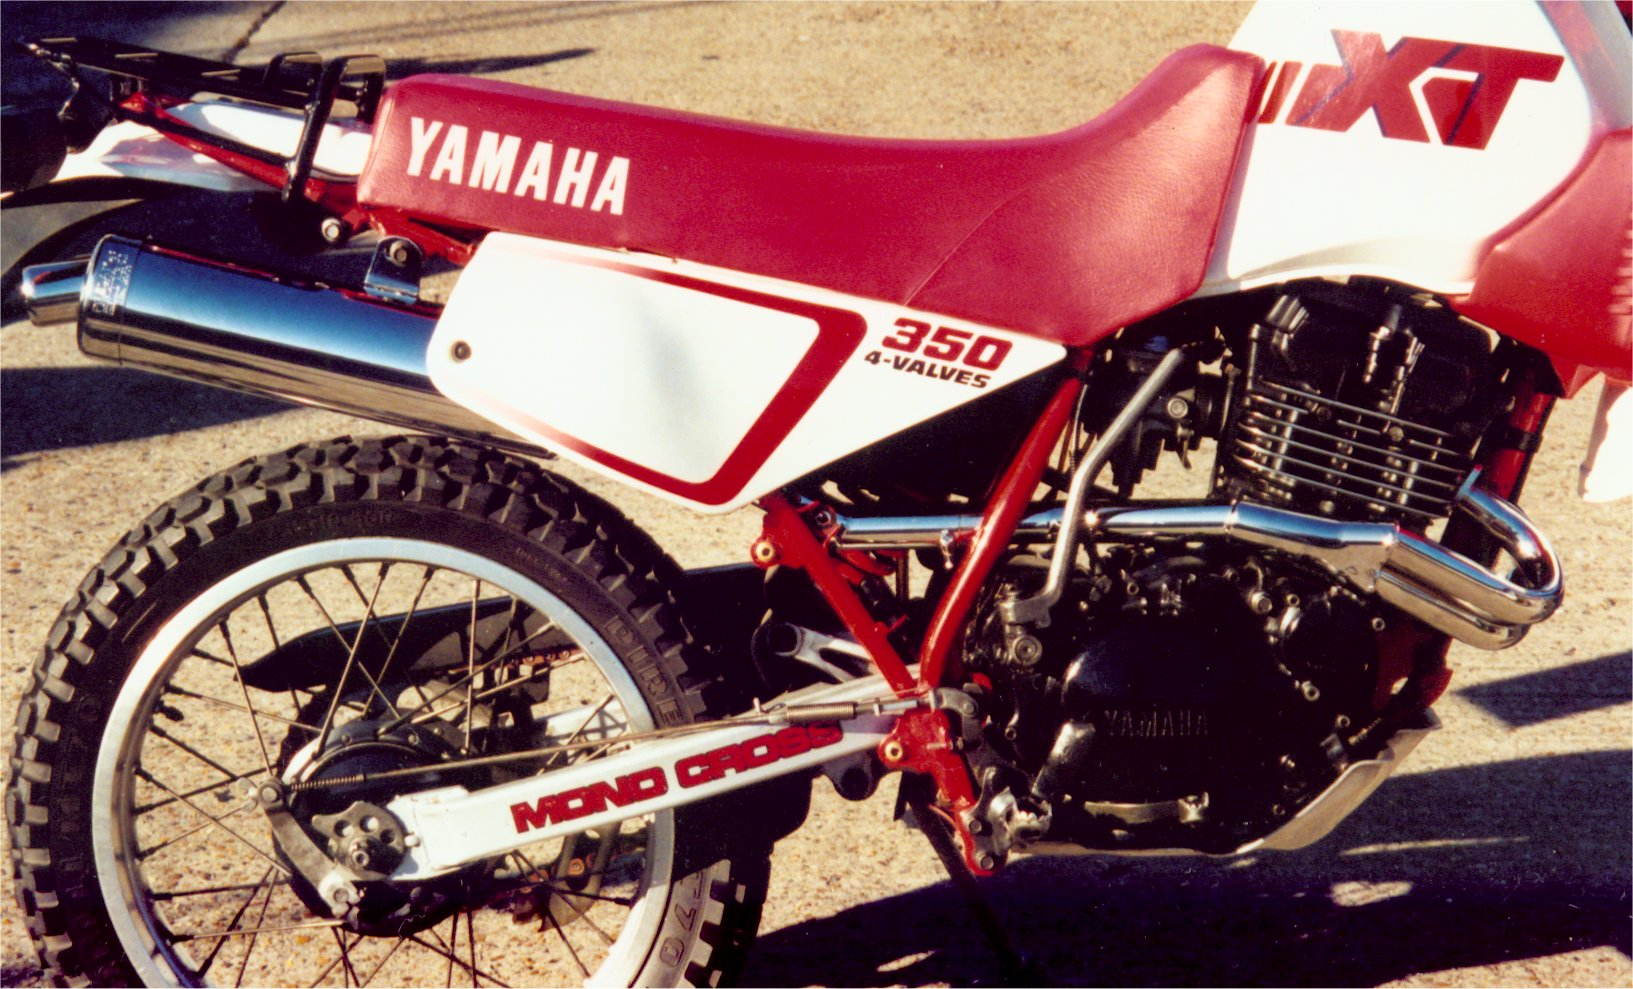 YAMAHA 4 Stroke Exhausts 300cc to 450cc Road Legal